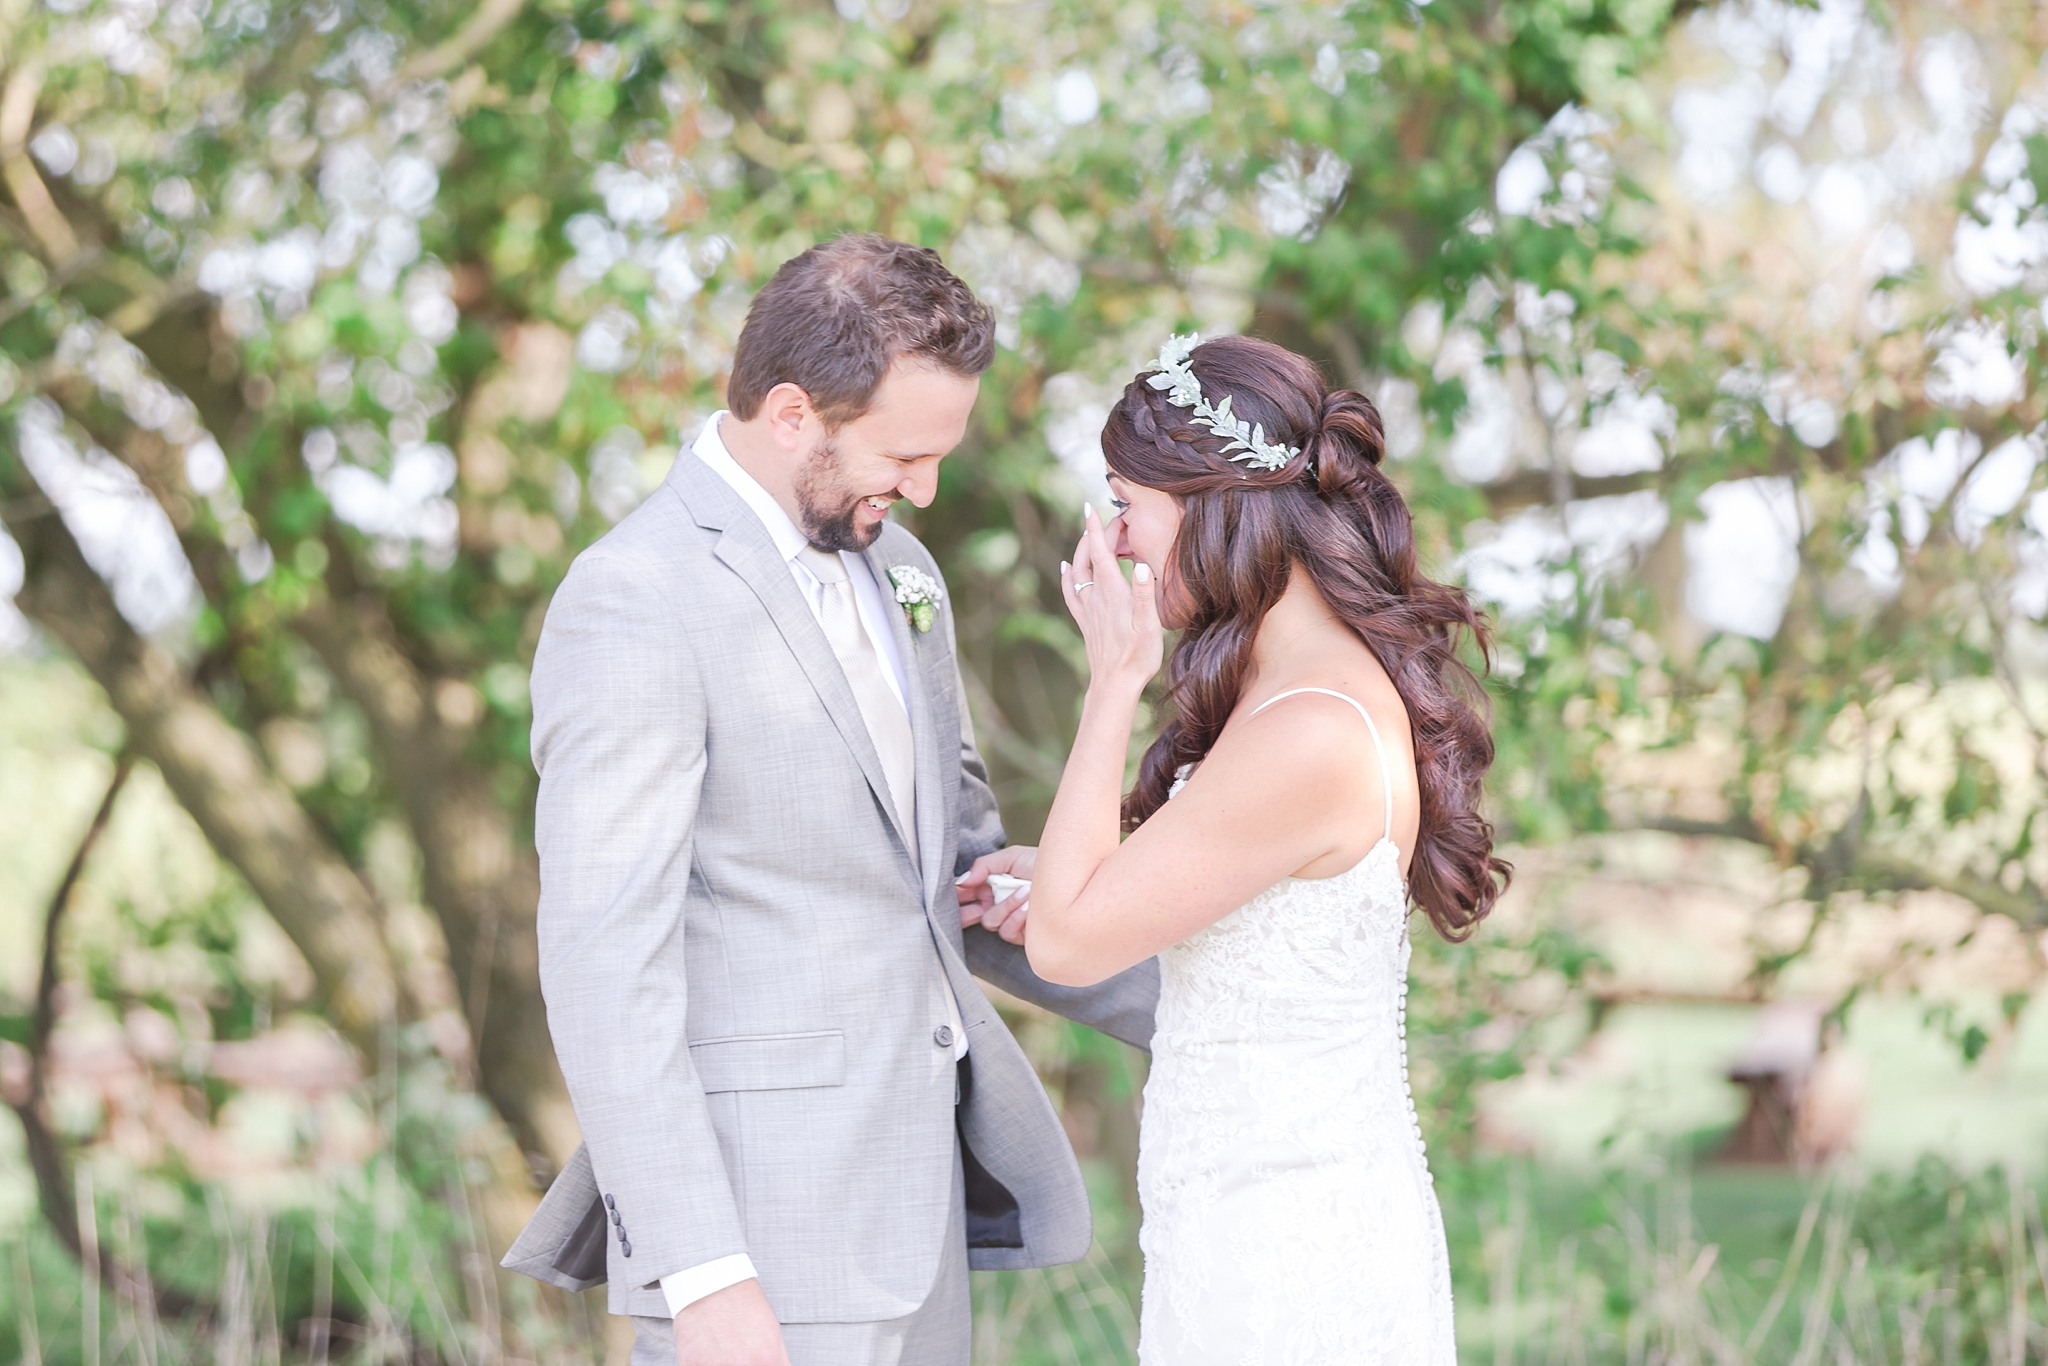 natural-rustic-wedding-photos-at-frutig-farms-the-valley-in-ann-arbor-michigan-by-courtney-carolyn-photography_0018.jpg